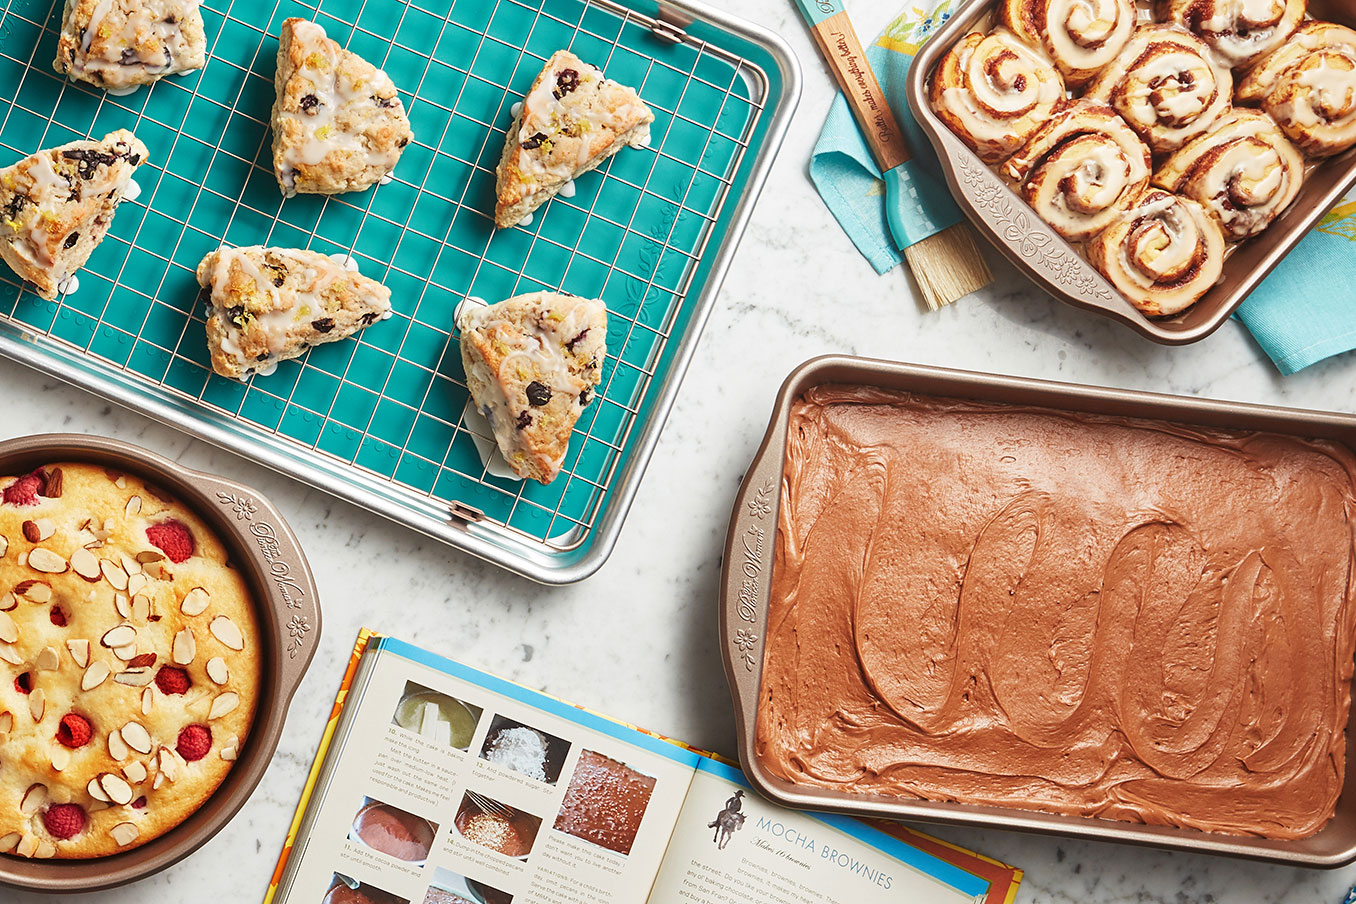 pioneer woman bakeware items with scones, cinnamon rolls, chocolate cake, and crumble